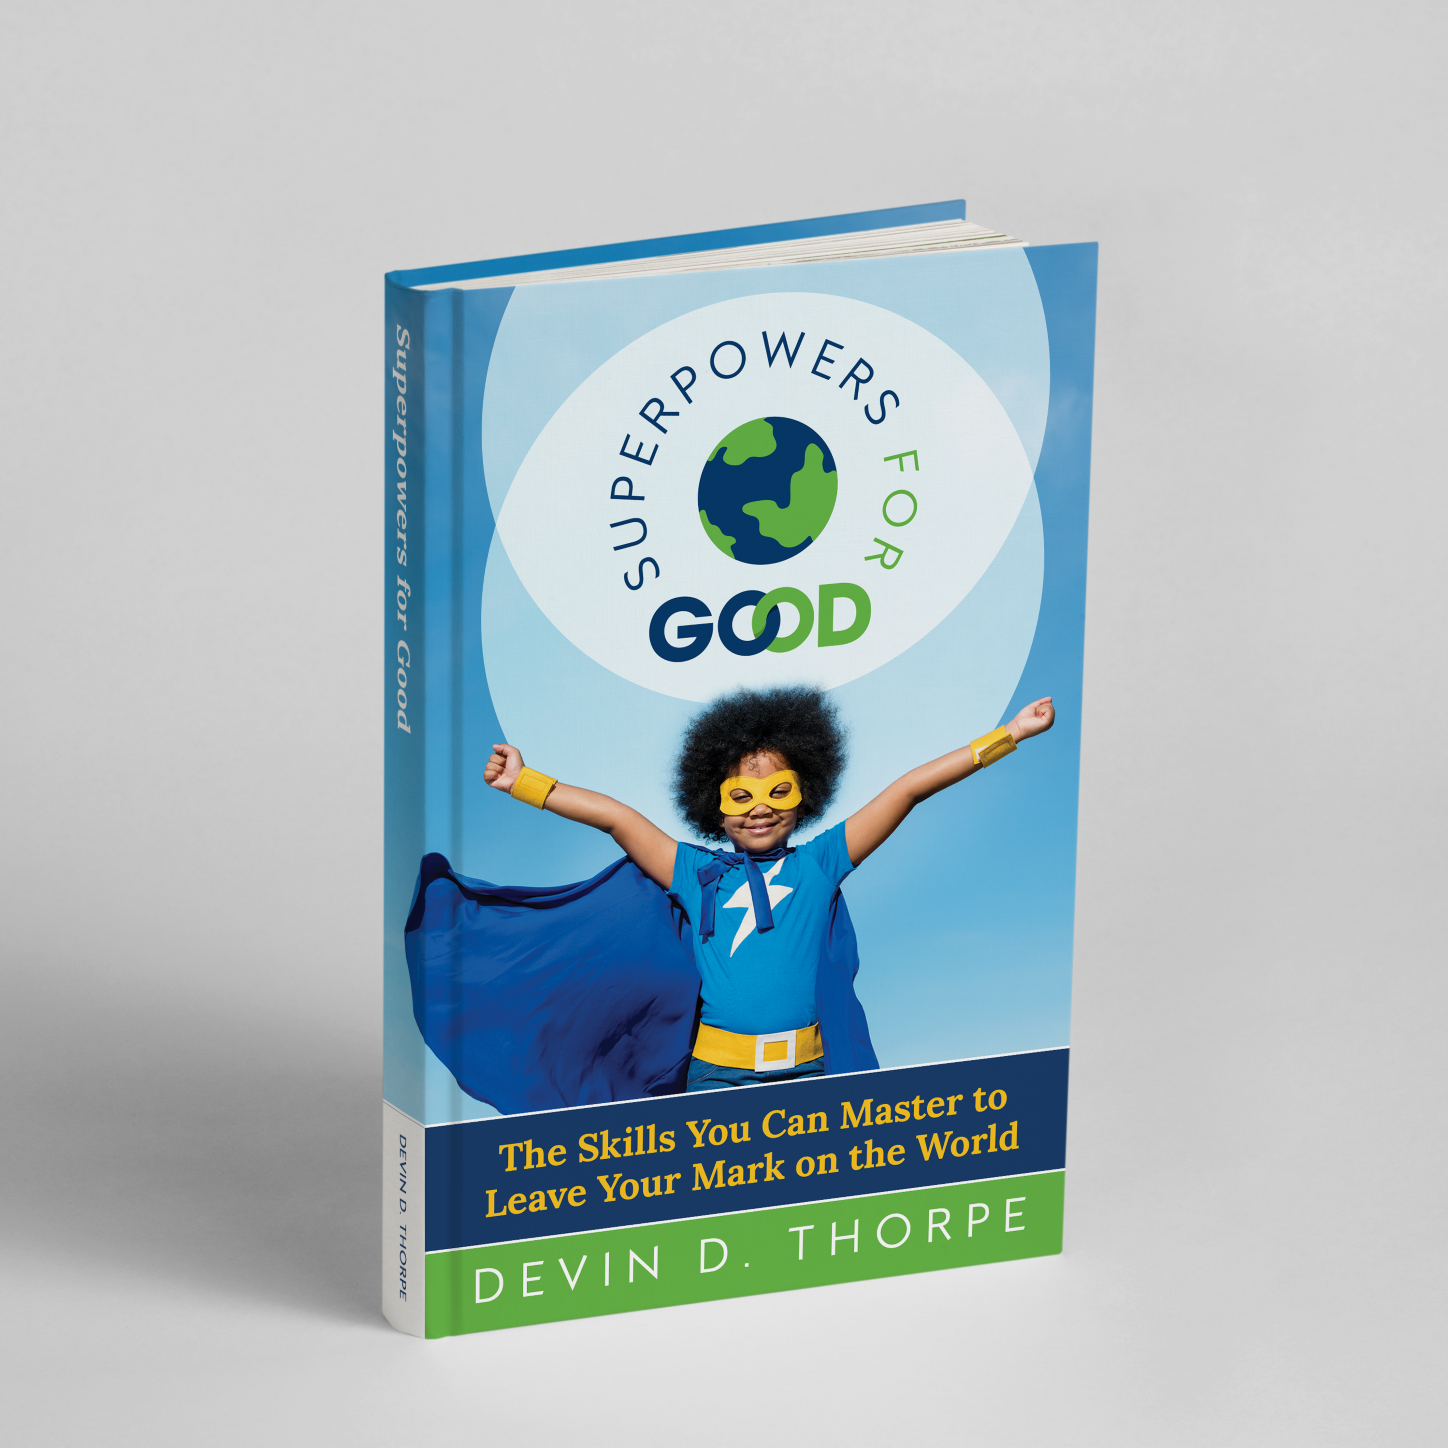 Photo of hardcover edition of Superpowers for Good